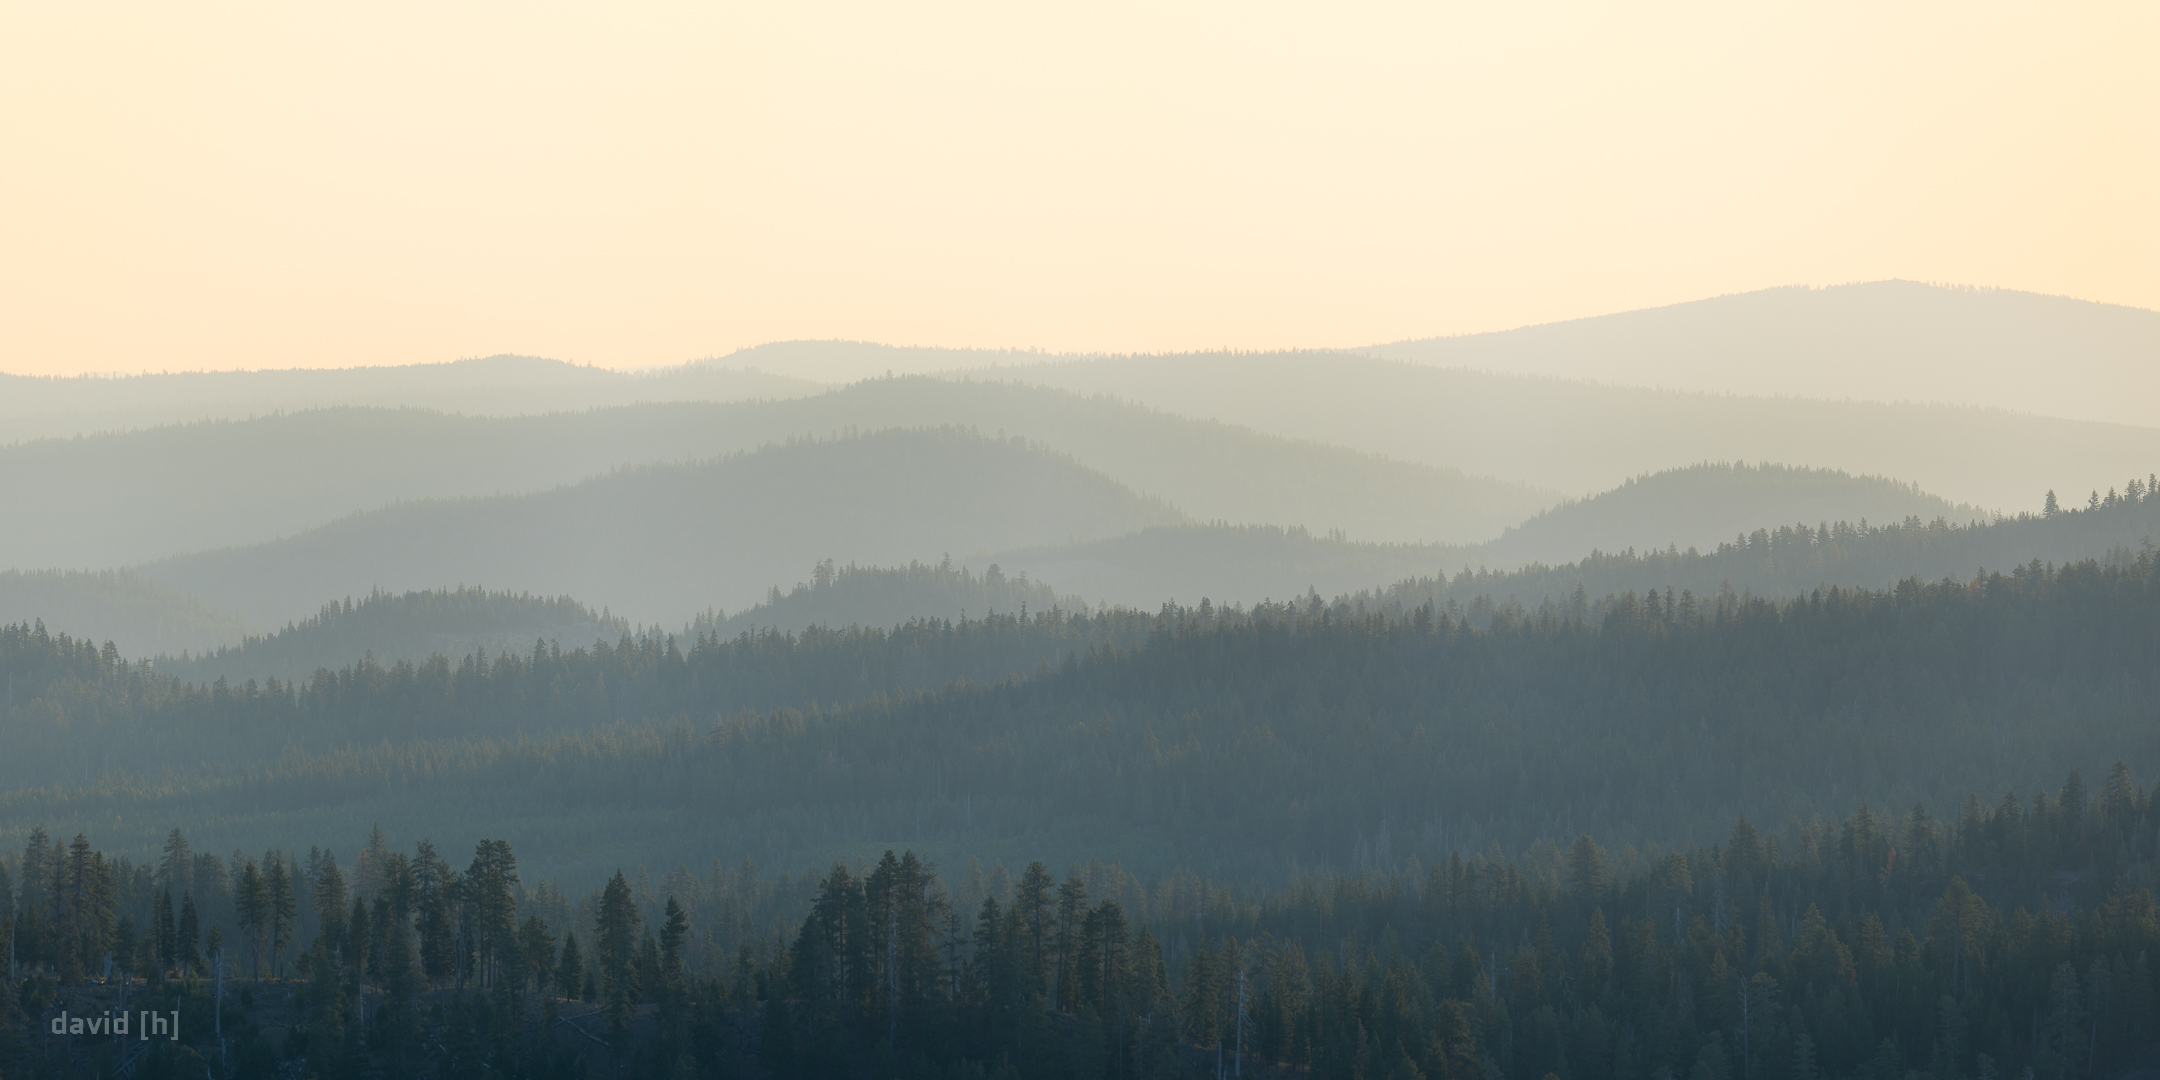 The forests in the distance of Cinder Cone are slighly obscured by layers of haze shortly after sunrise.